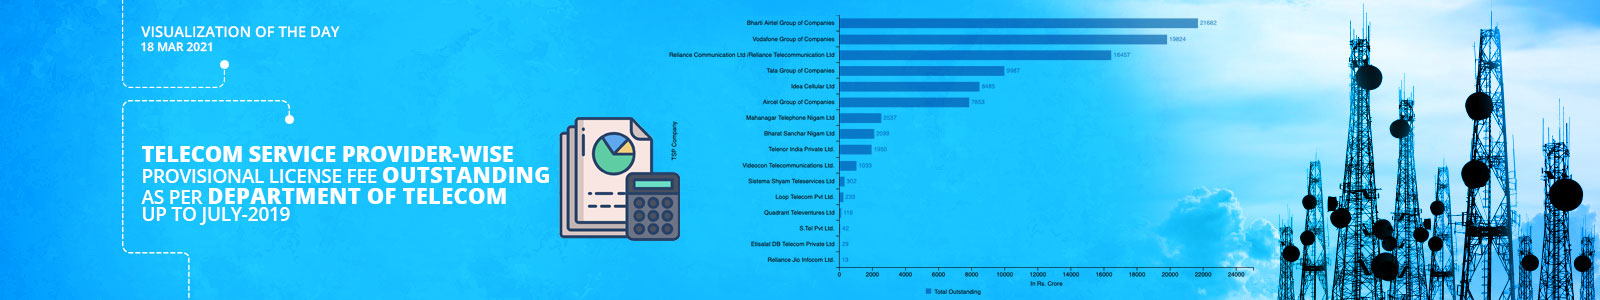 Telecom Service Provider-wise Provisional License Fee Outstanding as per Department of Telecom up to July-2019